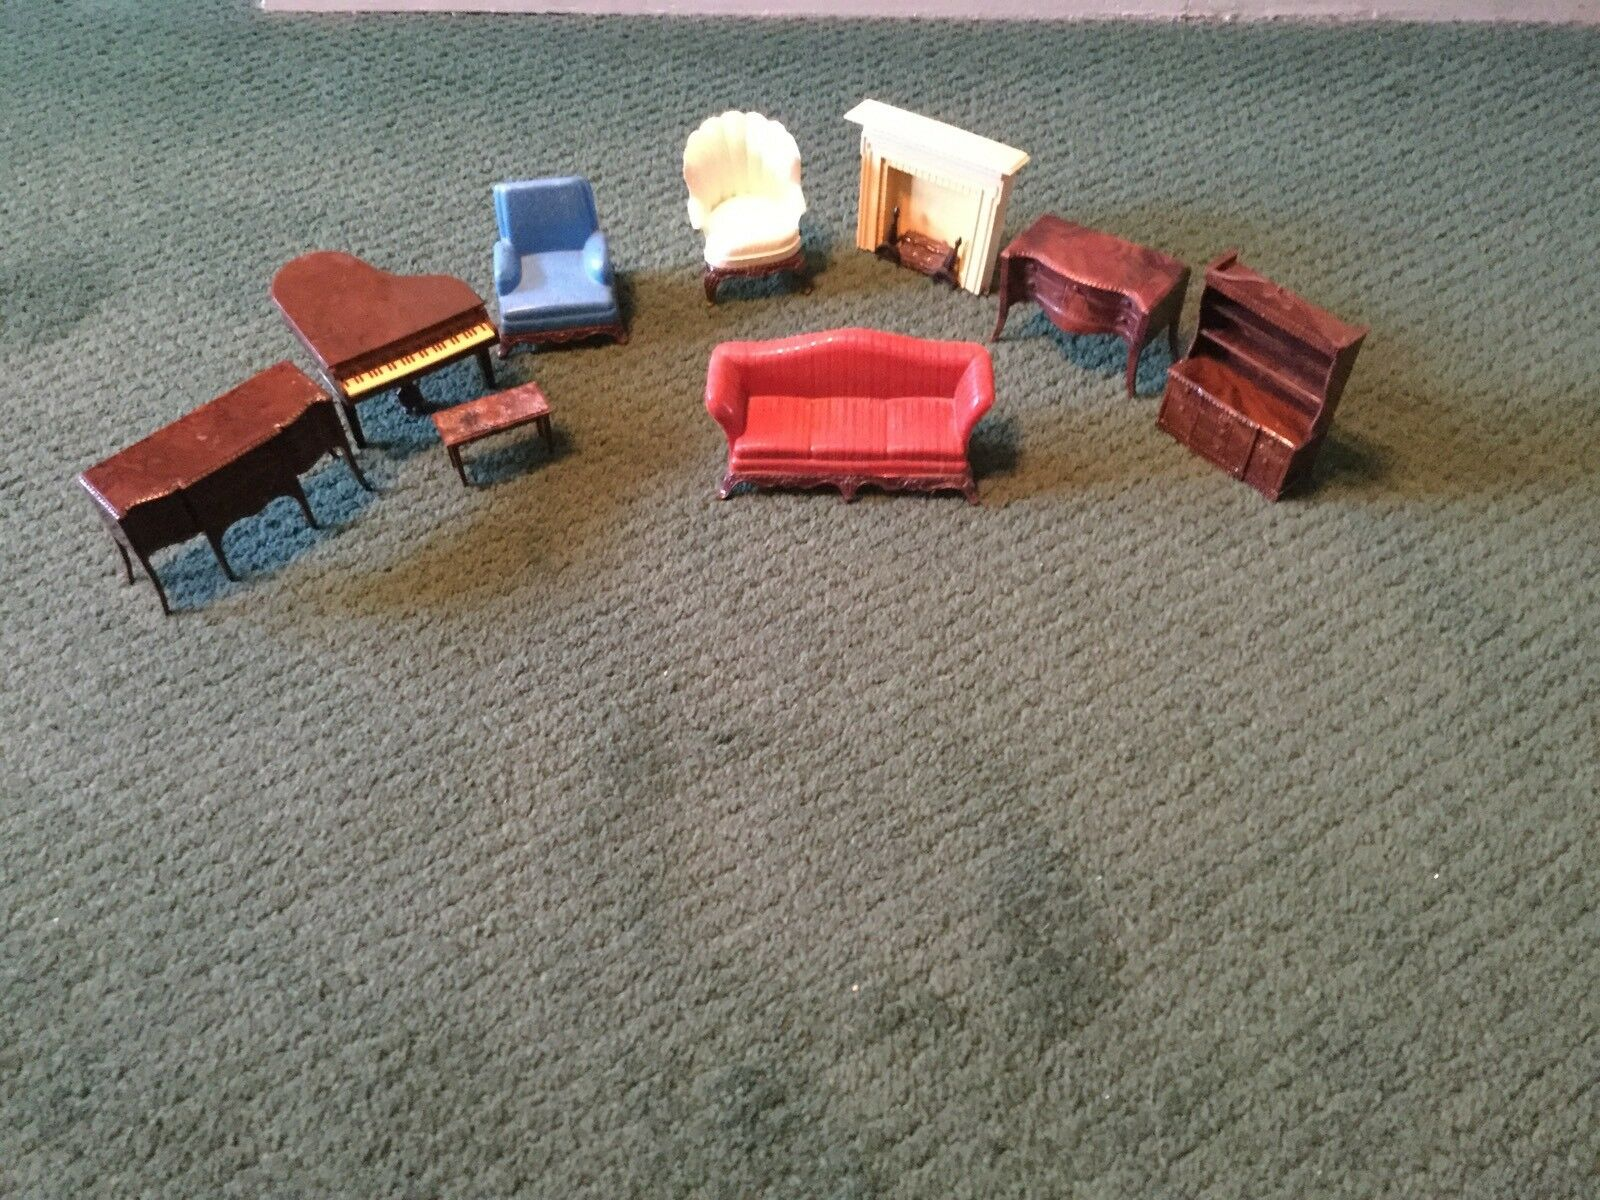 RENWAL DOLLHOUSE FURNITURE LIVING ROOM GRAND PIANO FIREPLACE COUCH CHAIRS BUFFET